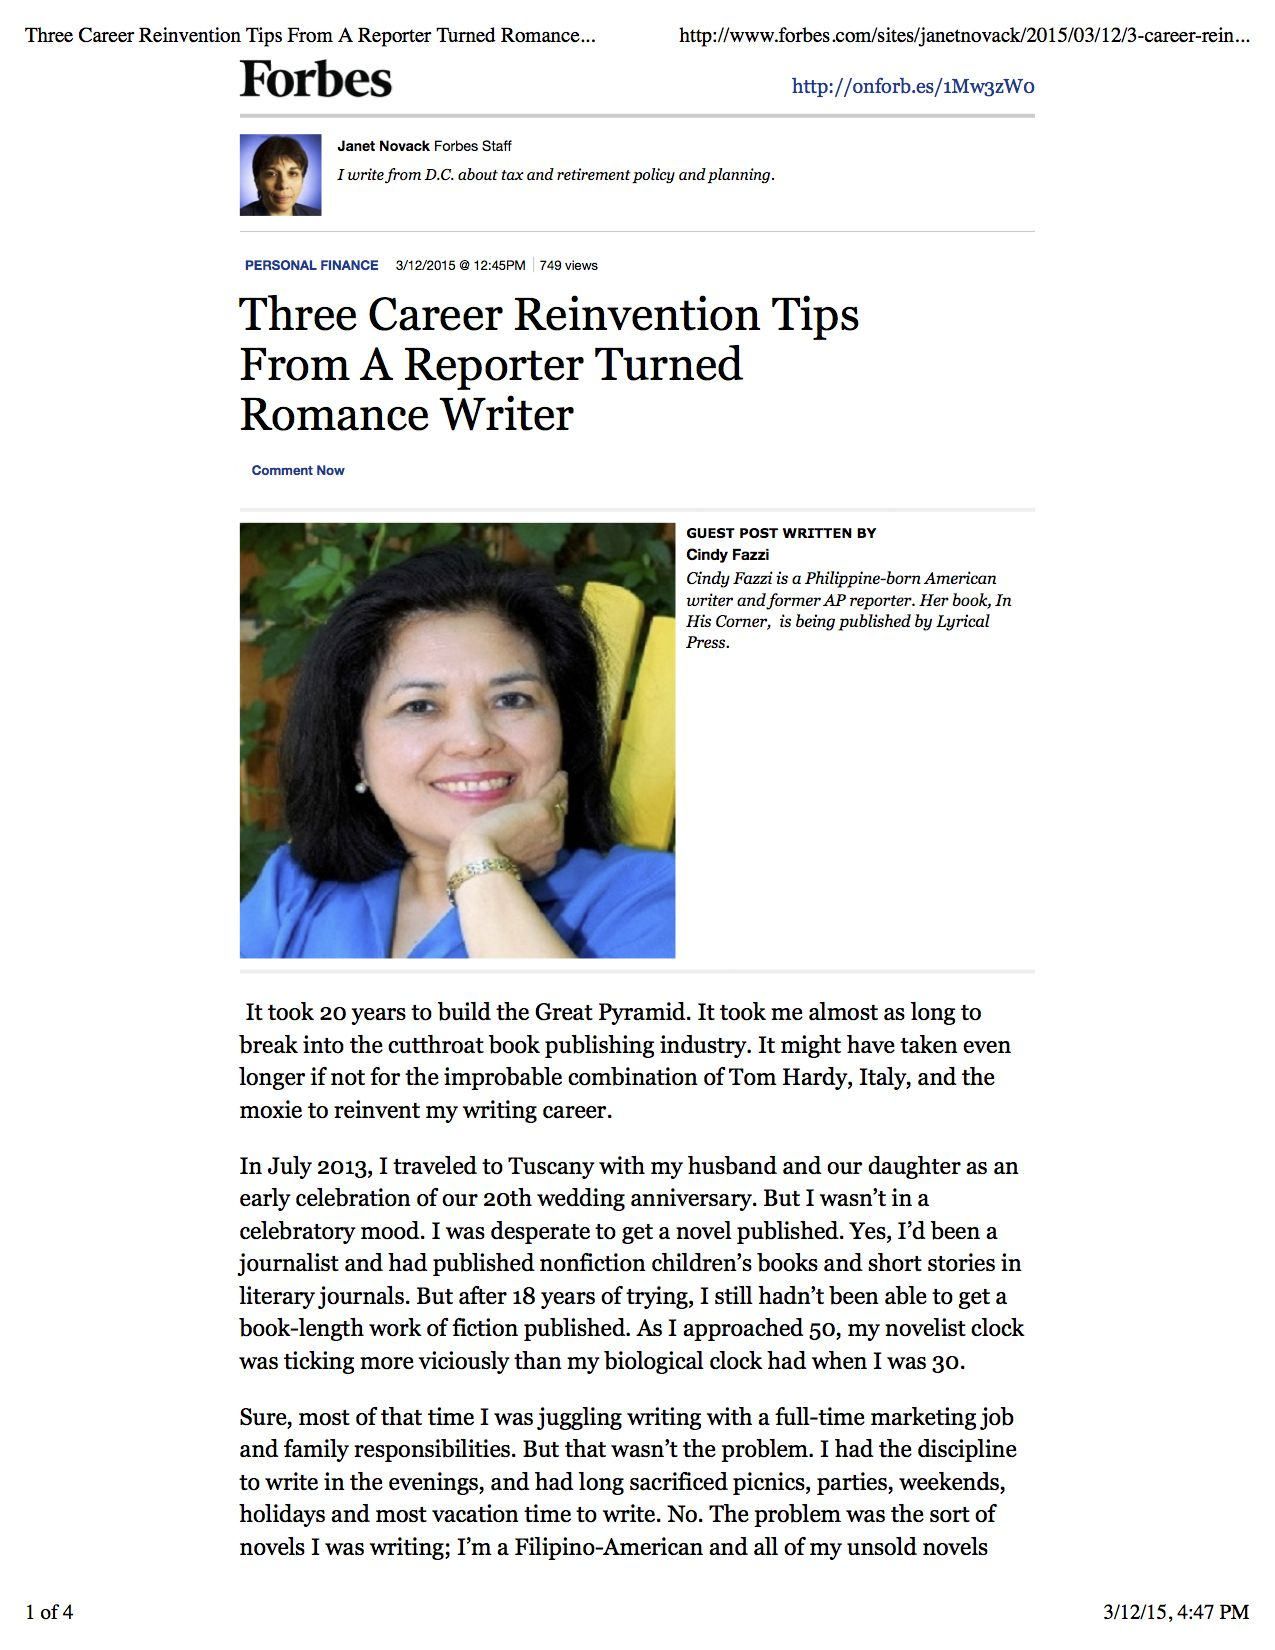 Forbes Article: 3 Career Reinvention Tips From A Reporter Turned